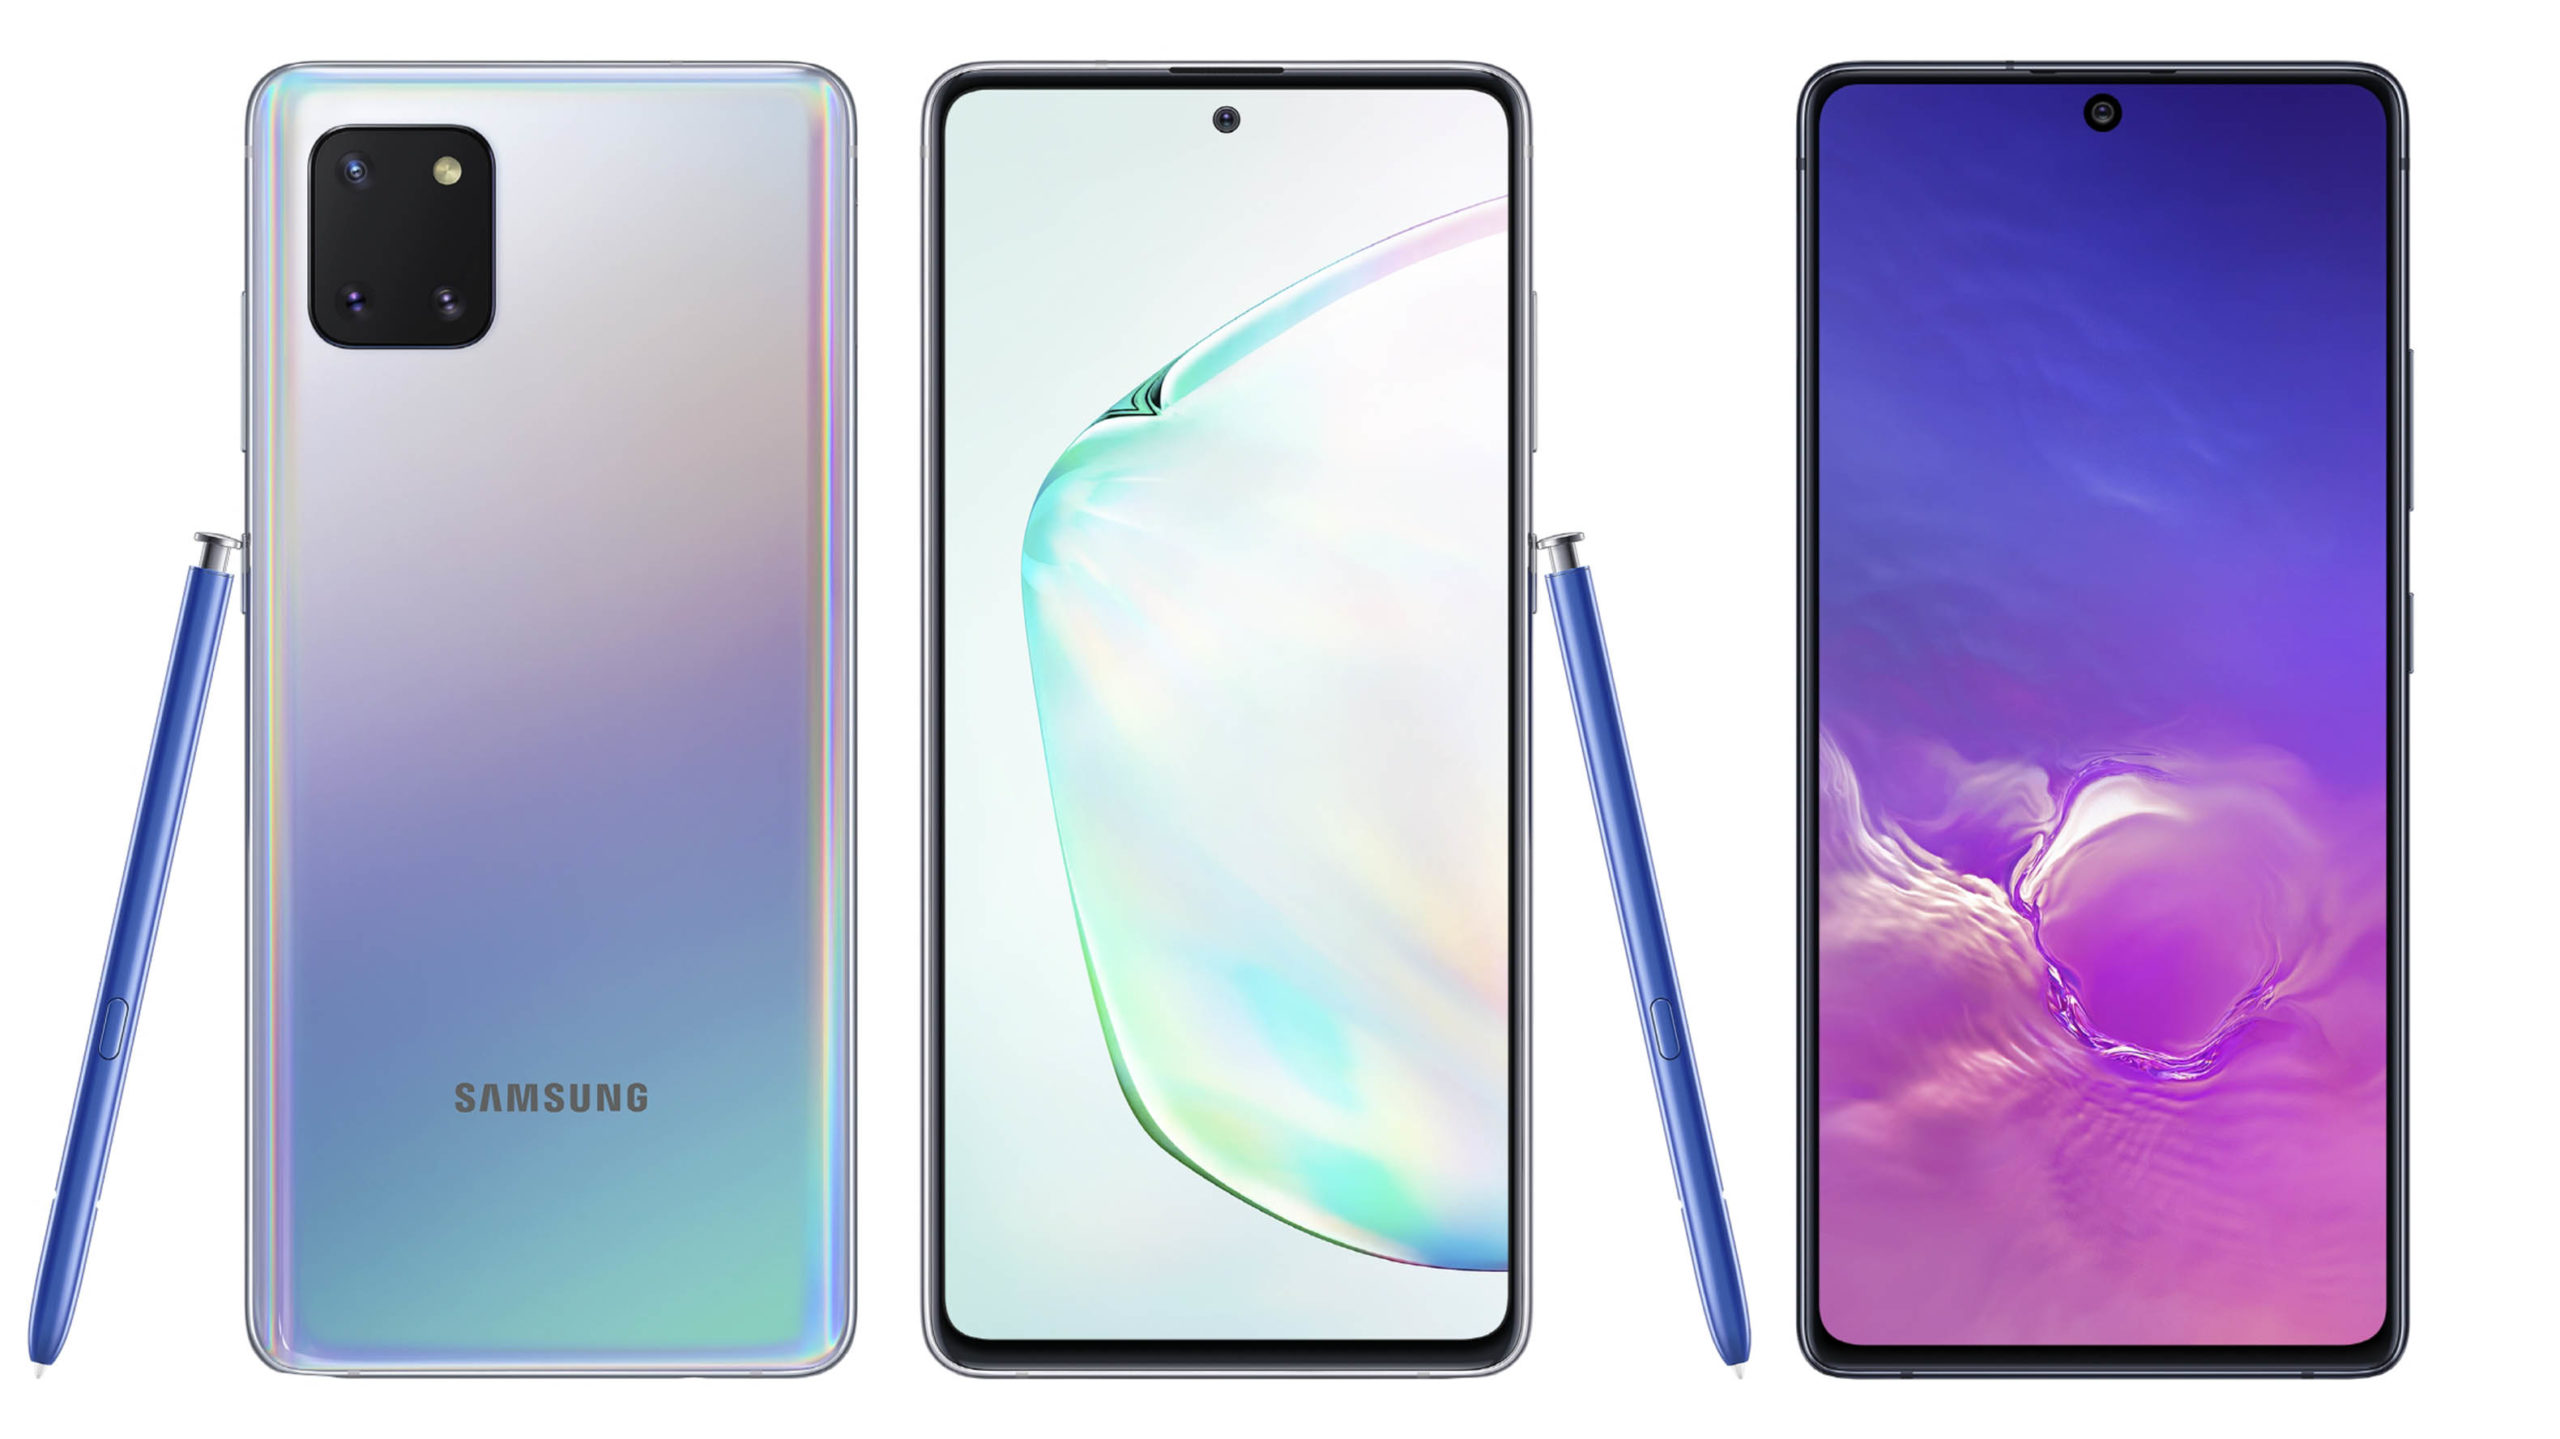 Samsung unveils Galaxy S10 Lite, Note 10 Lite ahead of CES